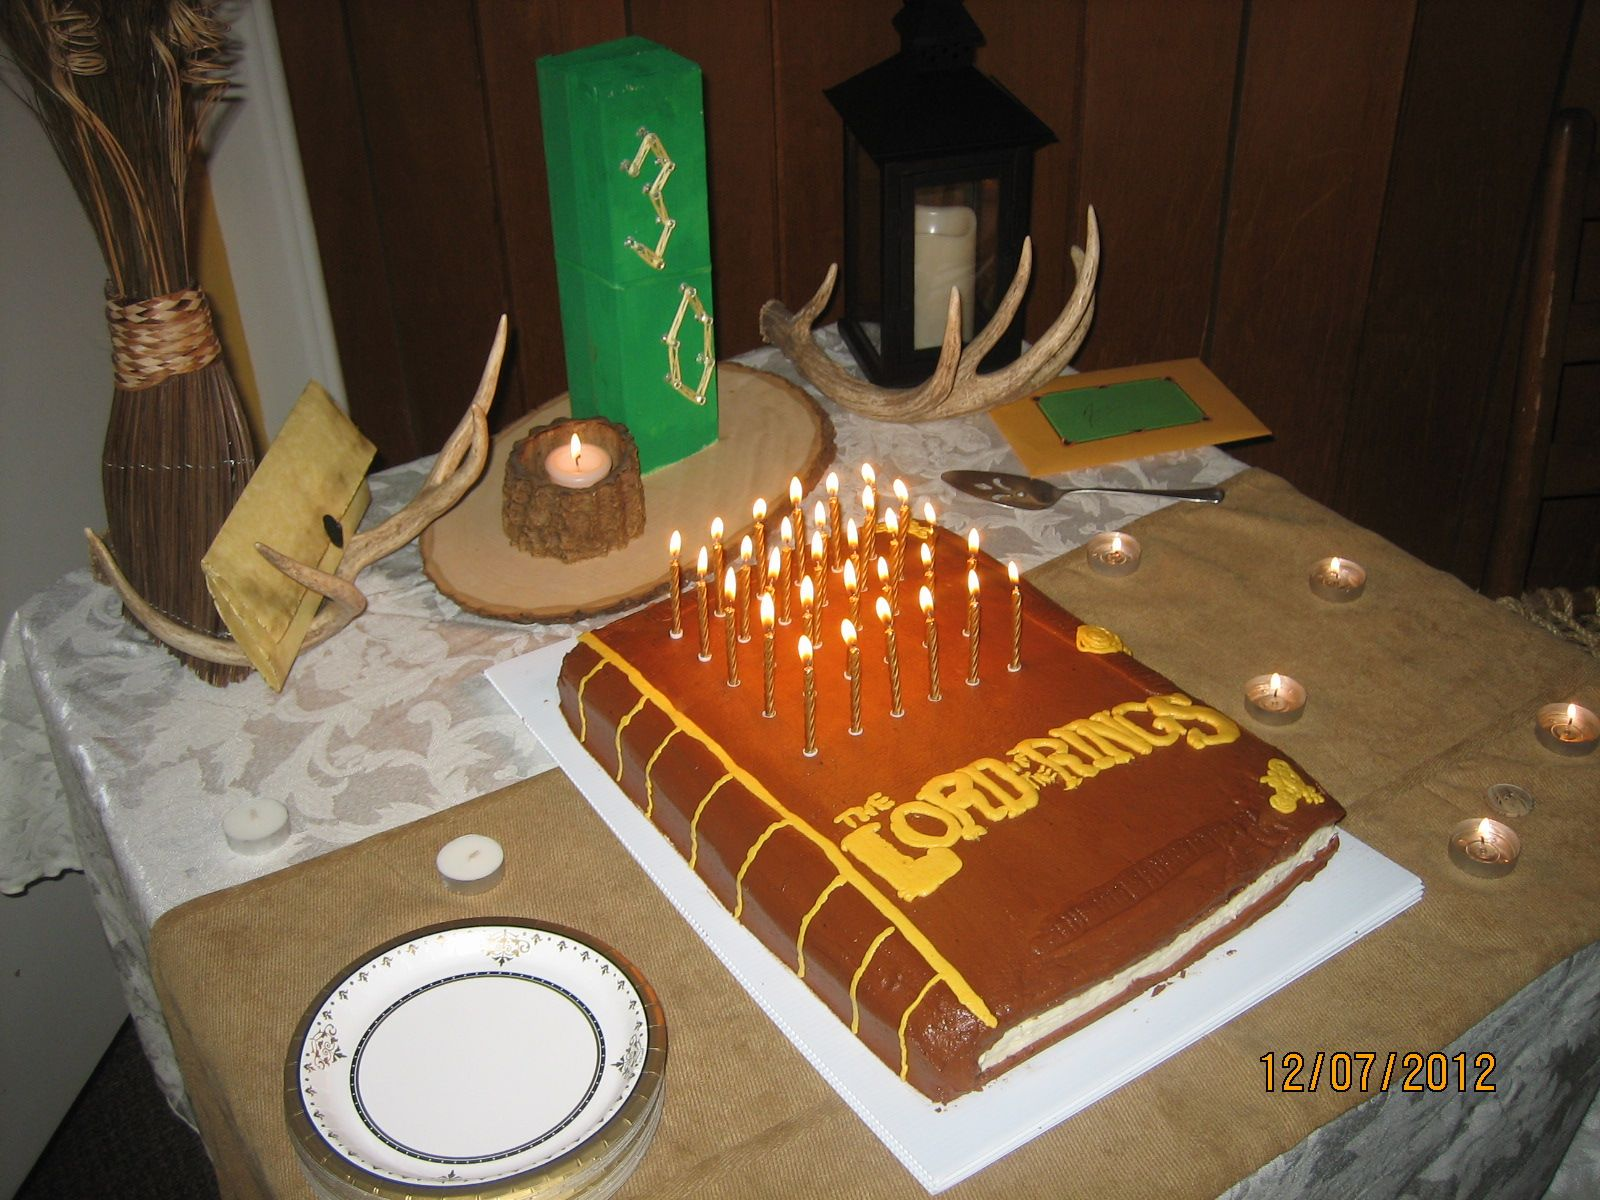 lord of the rings birthday cake